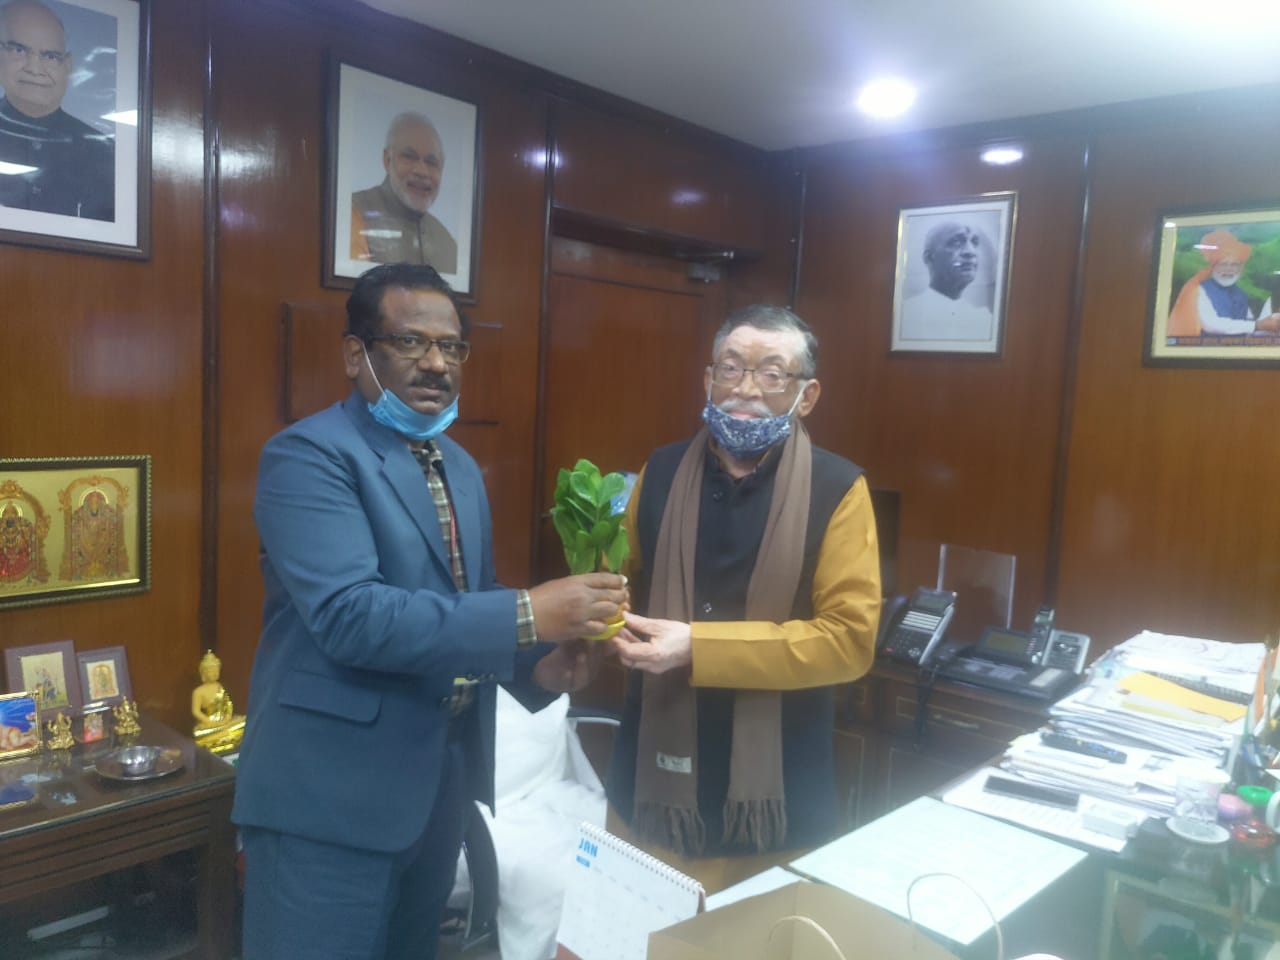 Shri Prabhat Kumar, DG, DGMS greeting Shri Santosh Kumar Gangwar, Honorable Minister for Labour & Employment.